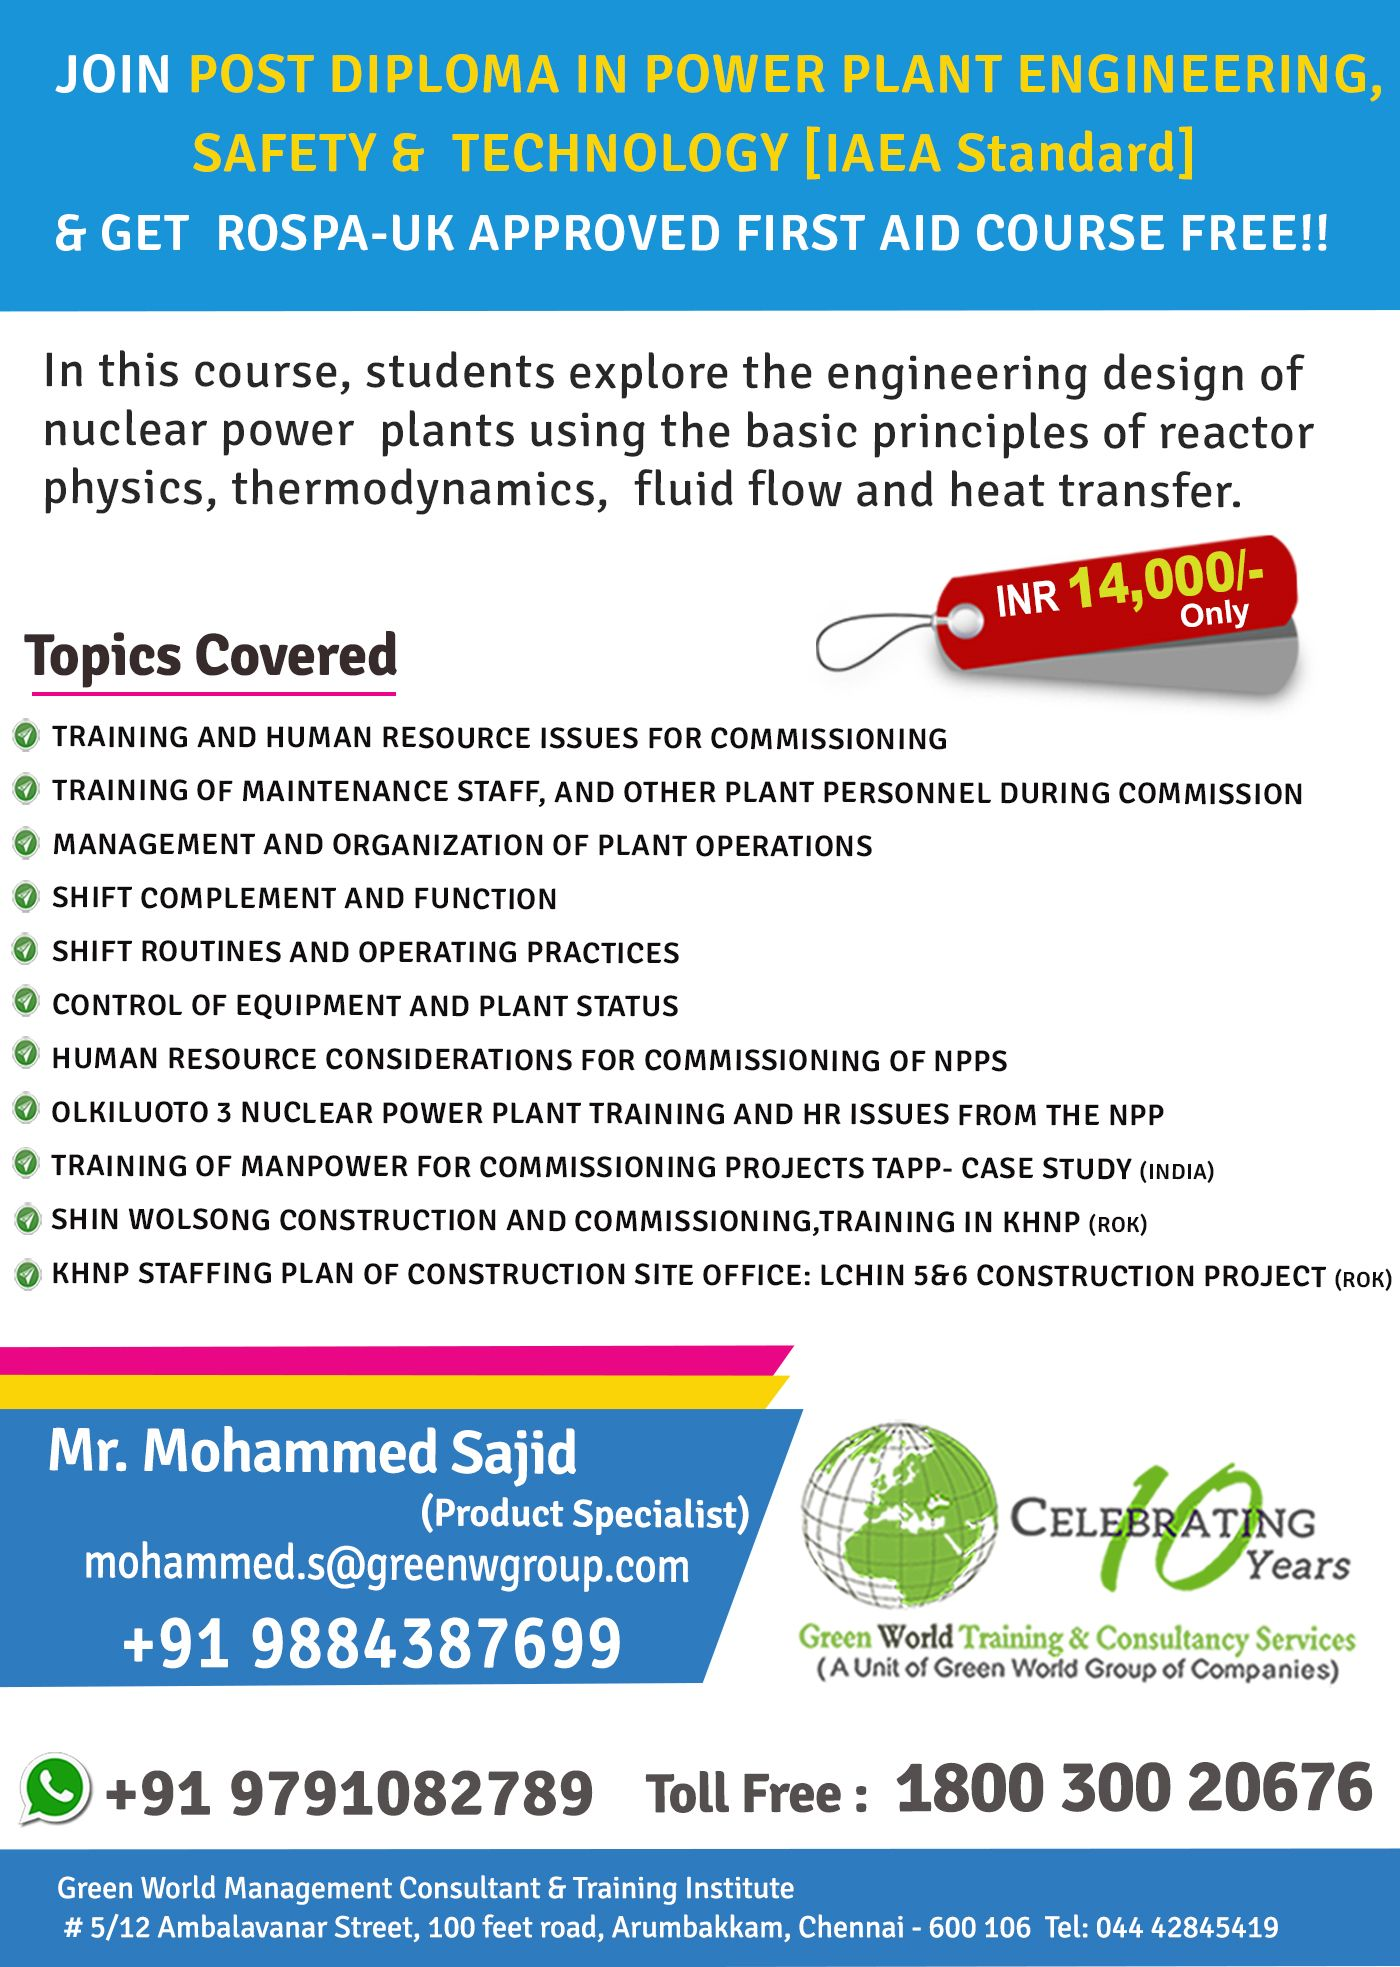 Pin By Green World On New Offer For Post Diploma In Power Plant Engineering Safety Course In India Safety Courses Power Plant Thermodynamics